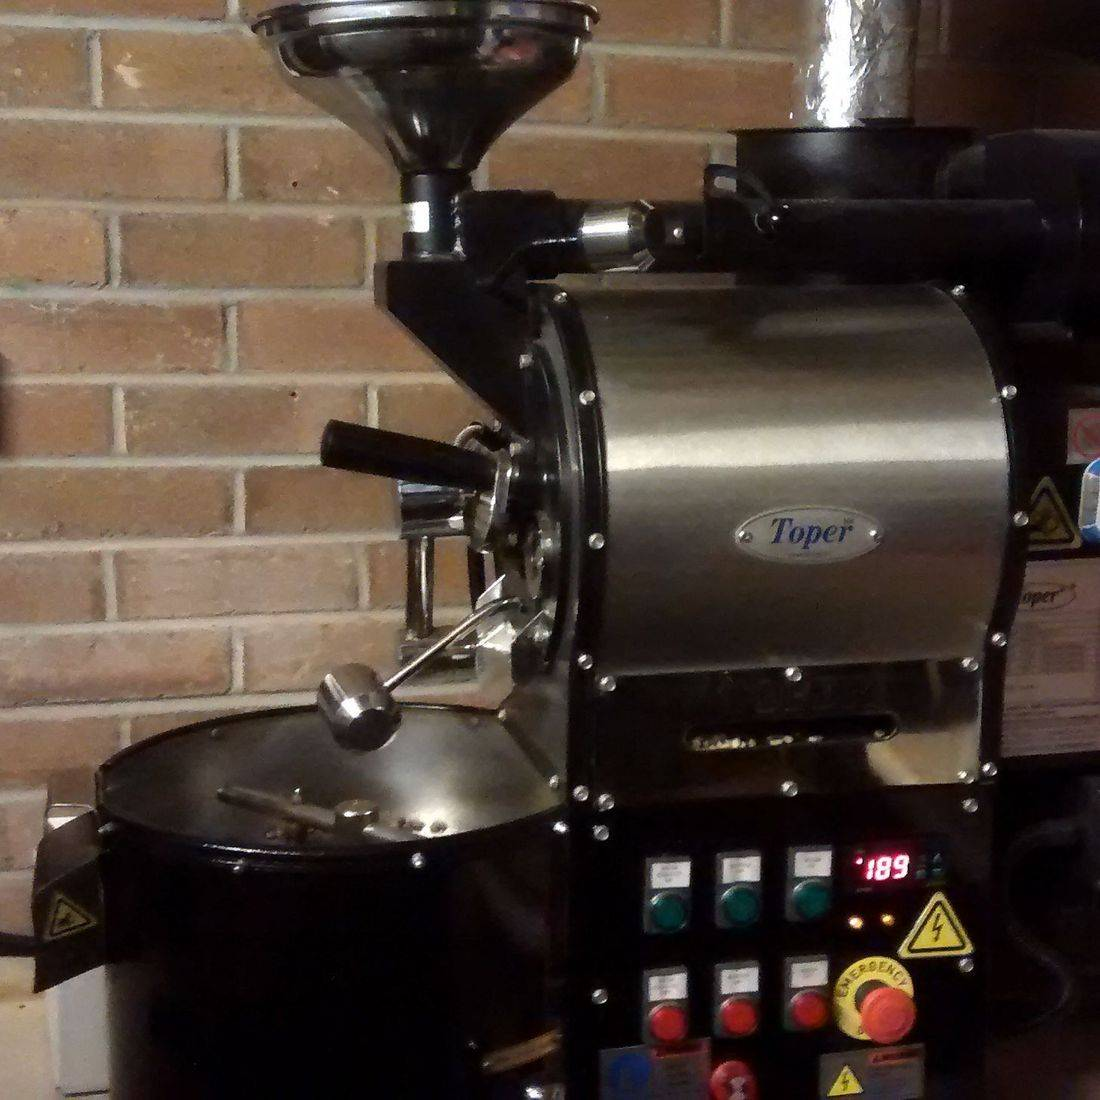 The Coffee Bean Roaster